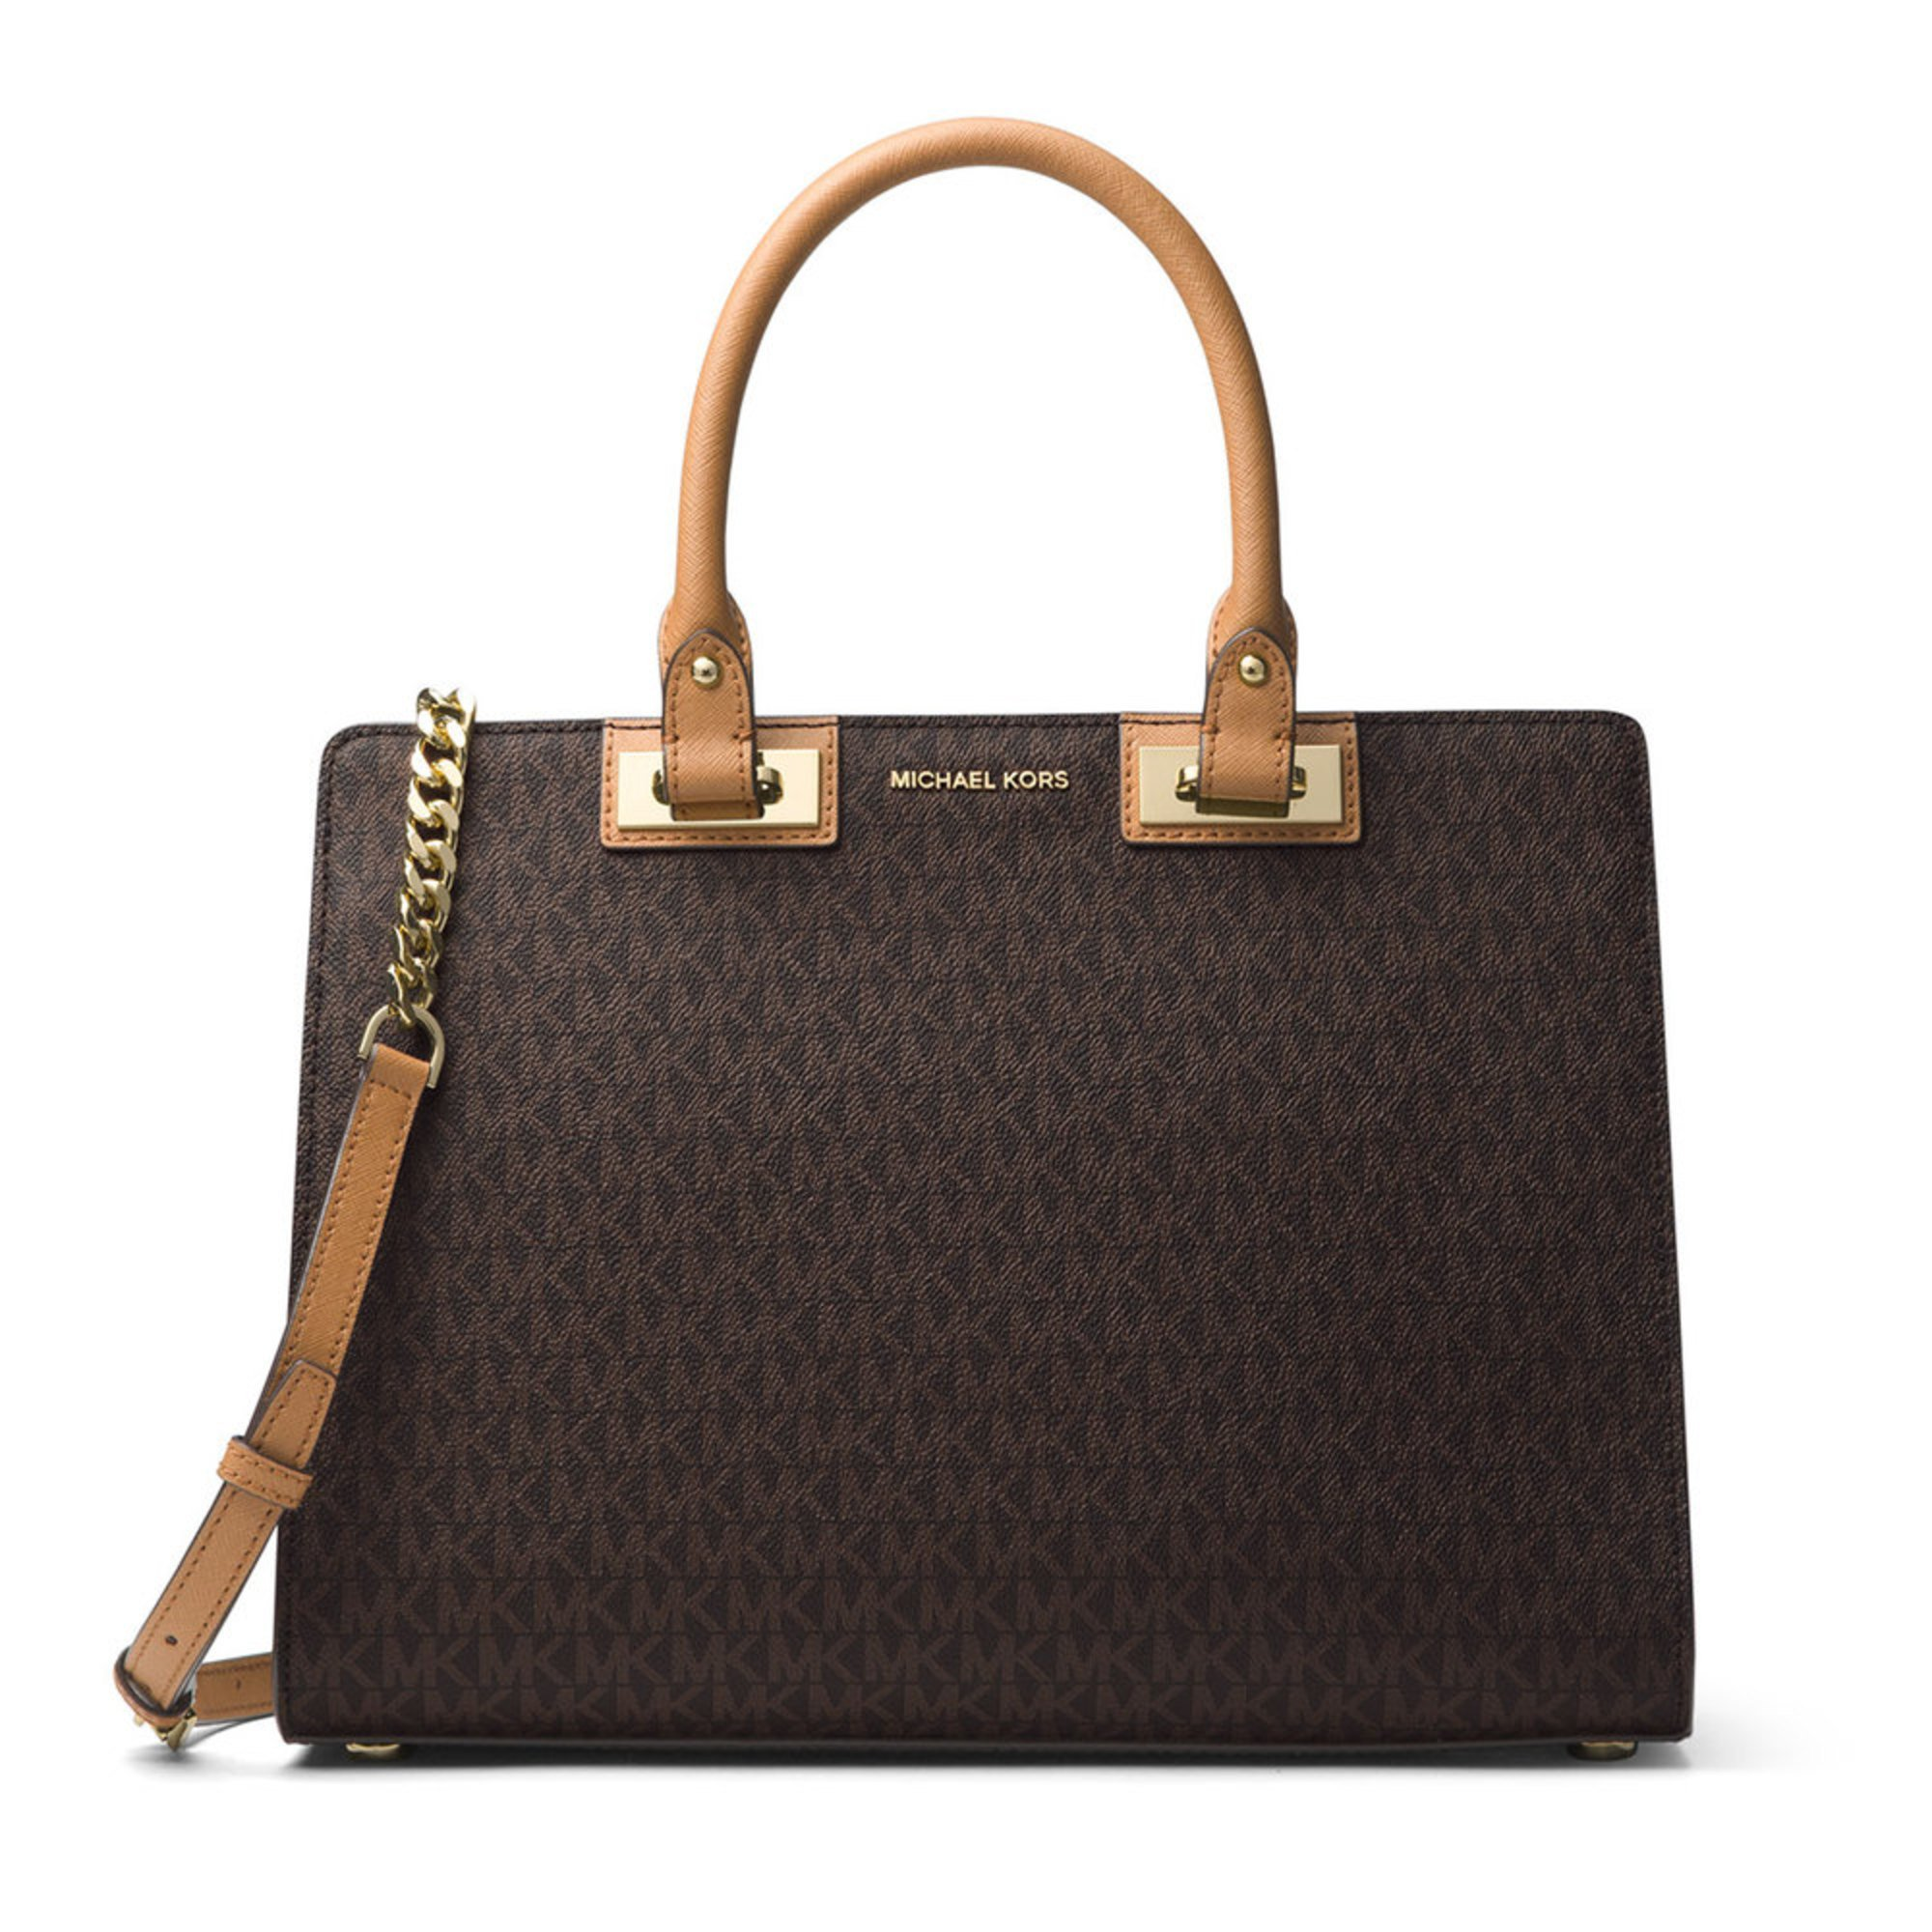 Michael Kors Outlet Store Cheap Sale 78% OFF Online, Latest Michael Kors Bags,Handbags,Watch,Wallets,Sunglasses For Sale,Big Discount and Free Shipping on .